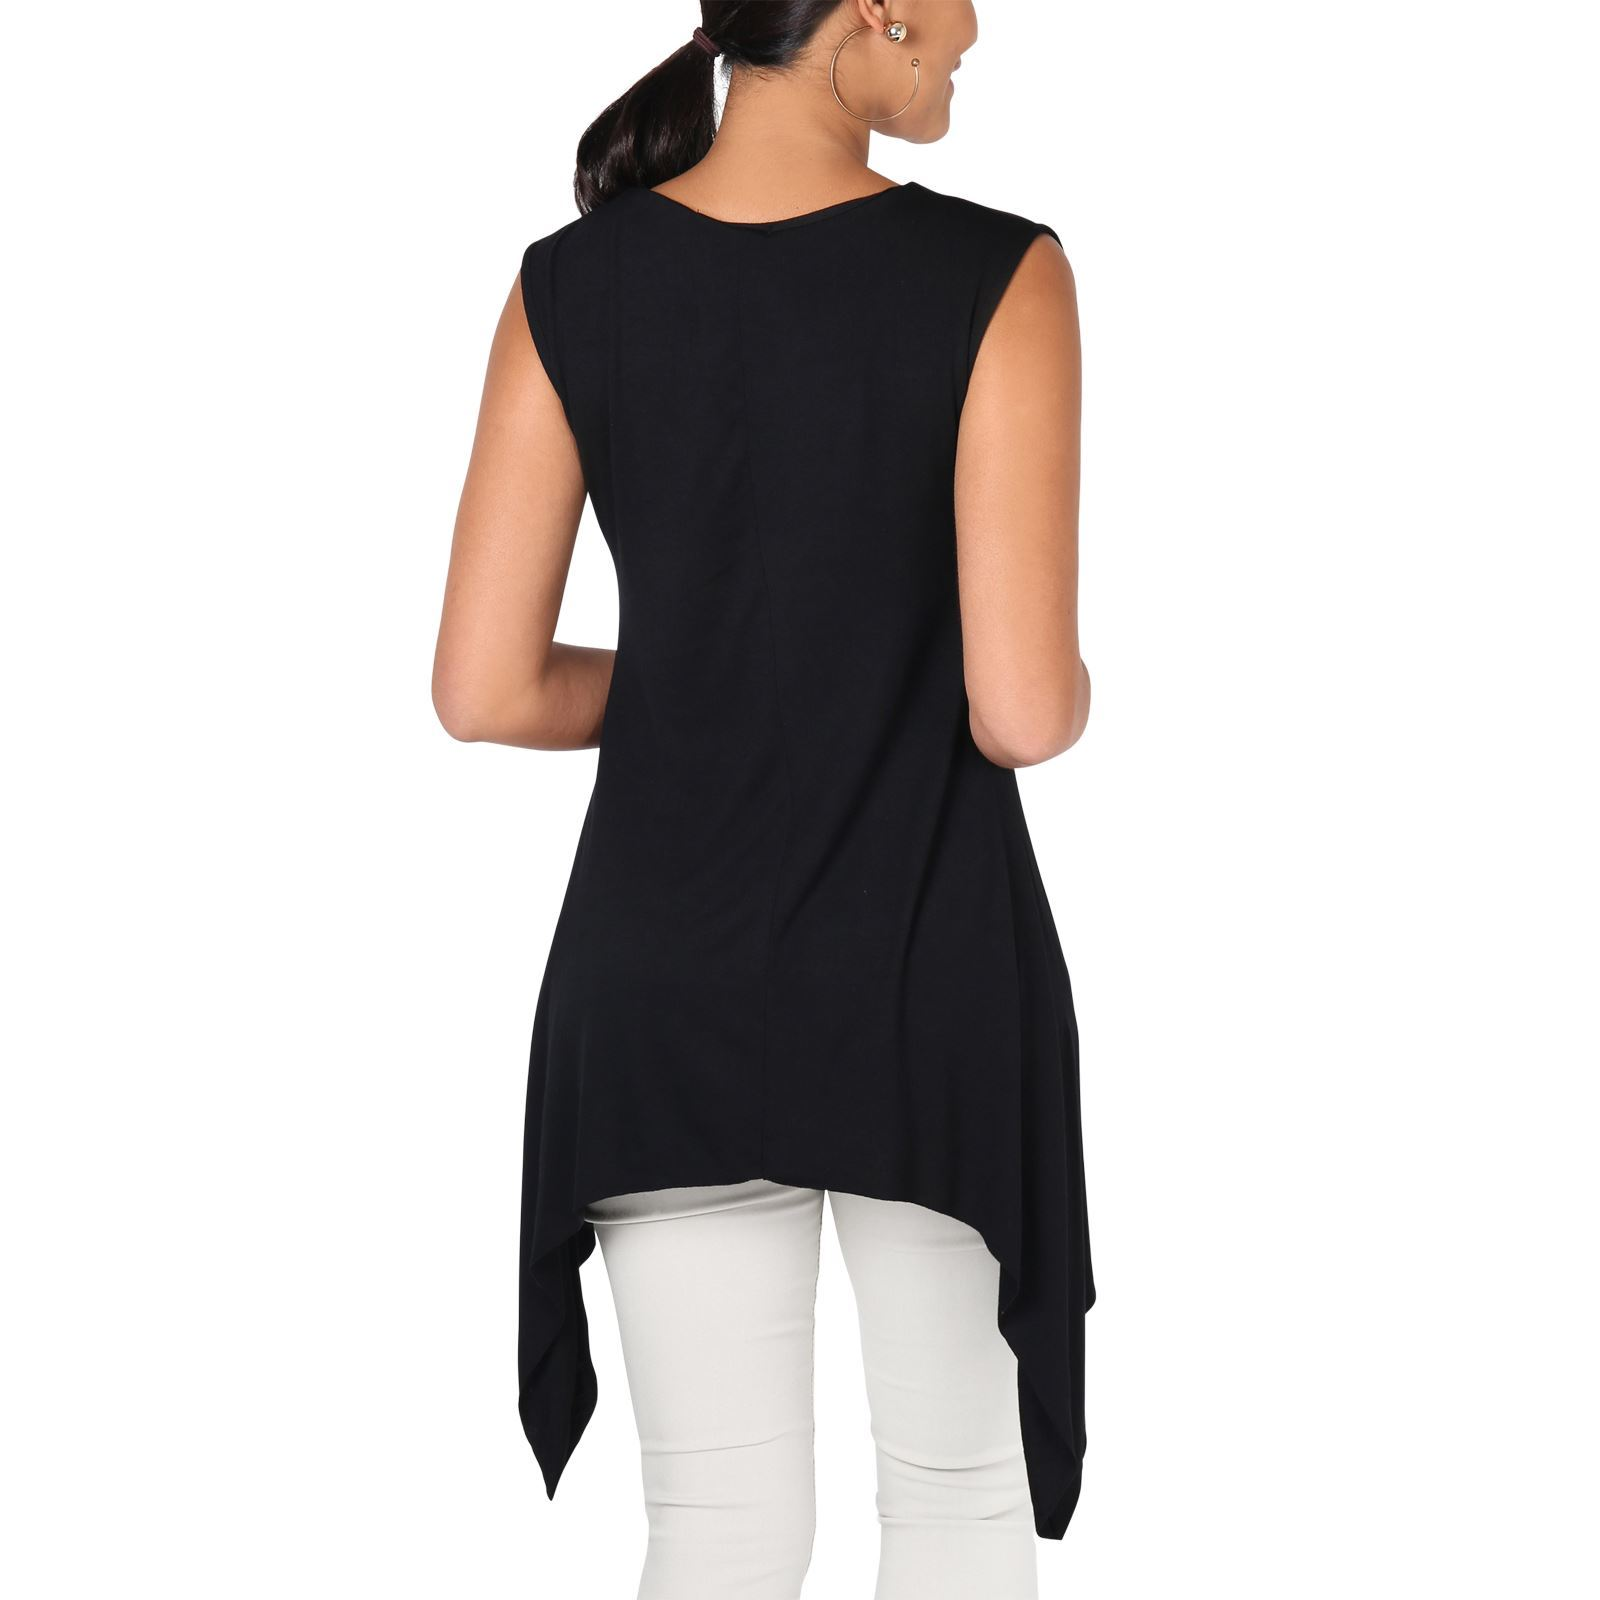 Women-Long-Top-Sleeveless-Pleated-Tee-Shirt-Tunic-Jersey-Stretch-Loose-Fit thumbnail 6